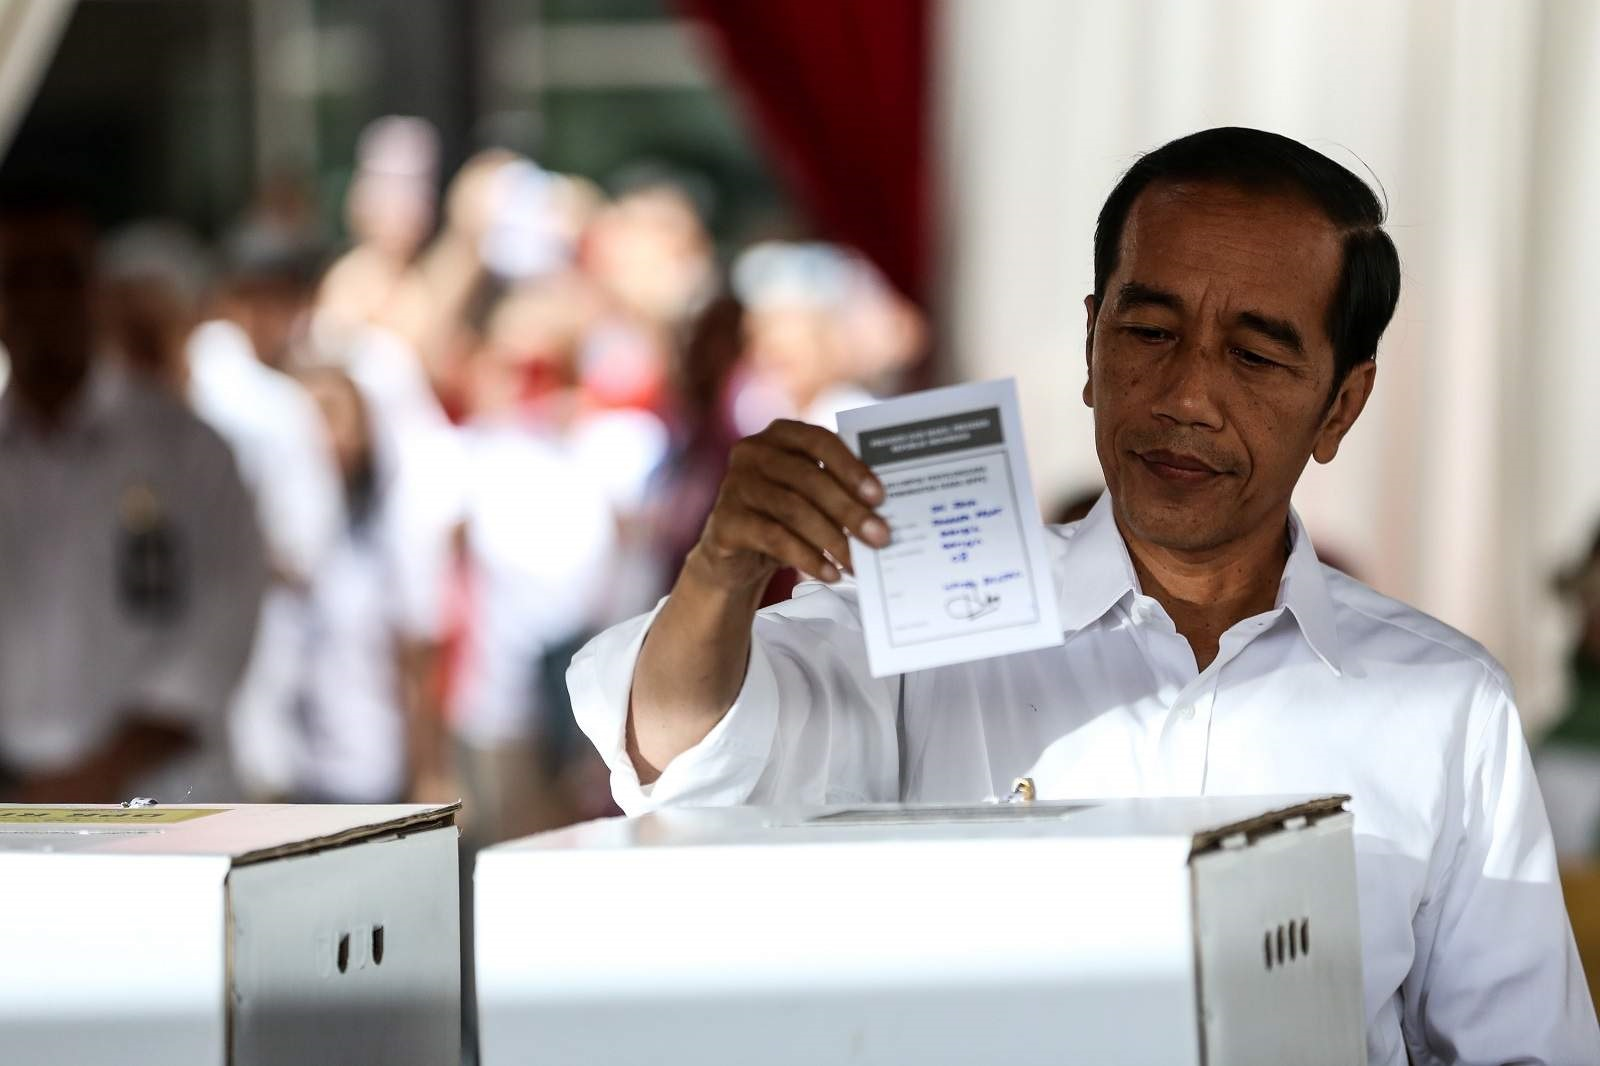 Indonesian President Joko Widodo votes during the 2019 election at a polling station in Jakarta, 17 April 2019 (Andrew Gal/NurPhoto via Getty Images)